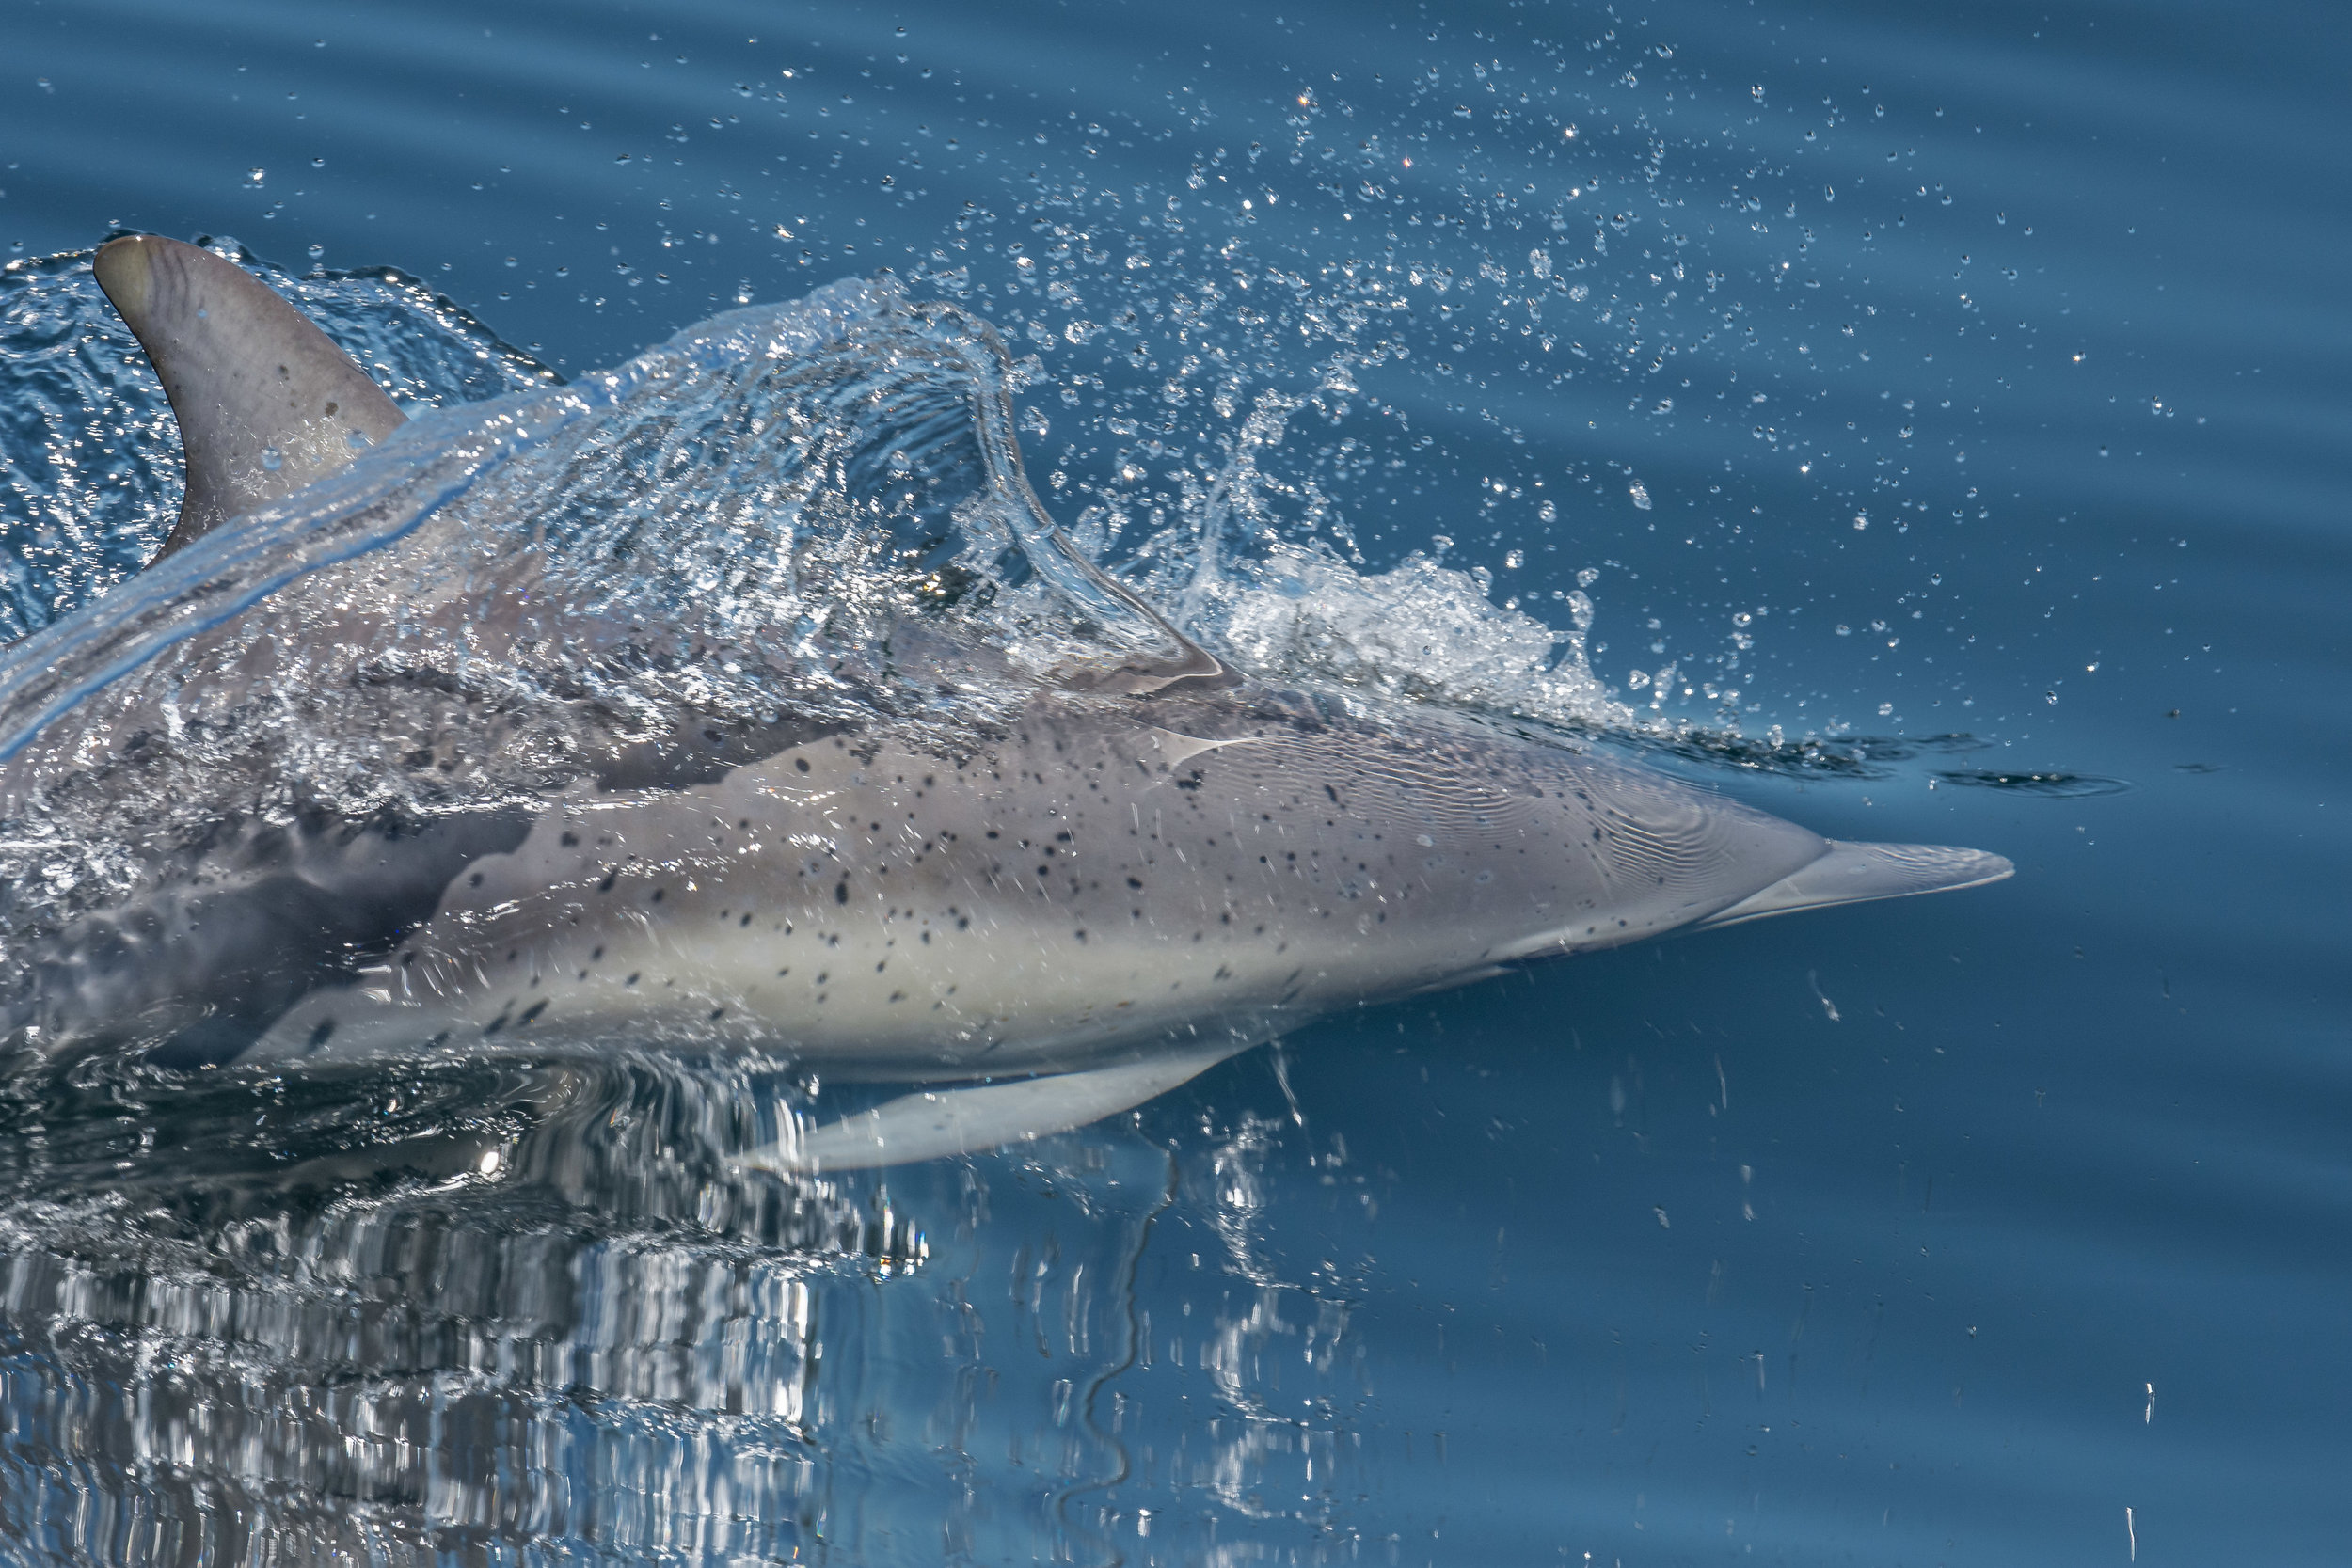 Photo of the Week 40: Common Dolphin (Delphinus capensis) Monterey Bay, MTY-SCZ (NV)  EQ: D7200, 500mm f/4  Taken: 9-25-2016 at 13:25   Settings: 750 mm (35mm eqiv), 1/2000s, f/5.6, ISO400, +1/3EV  Conditions: Sunny